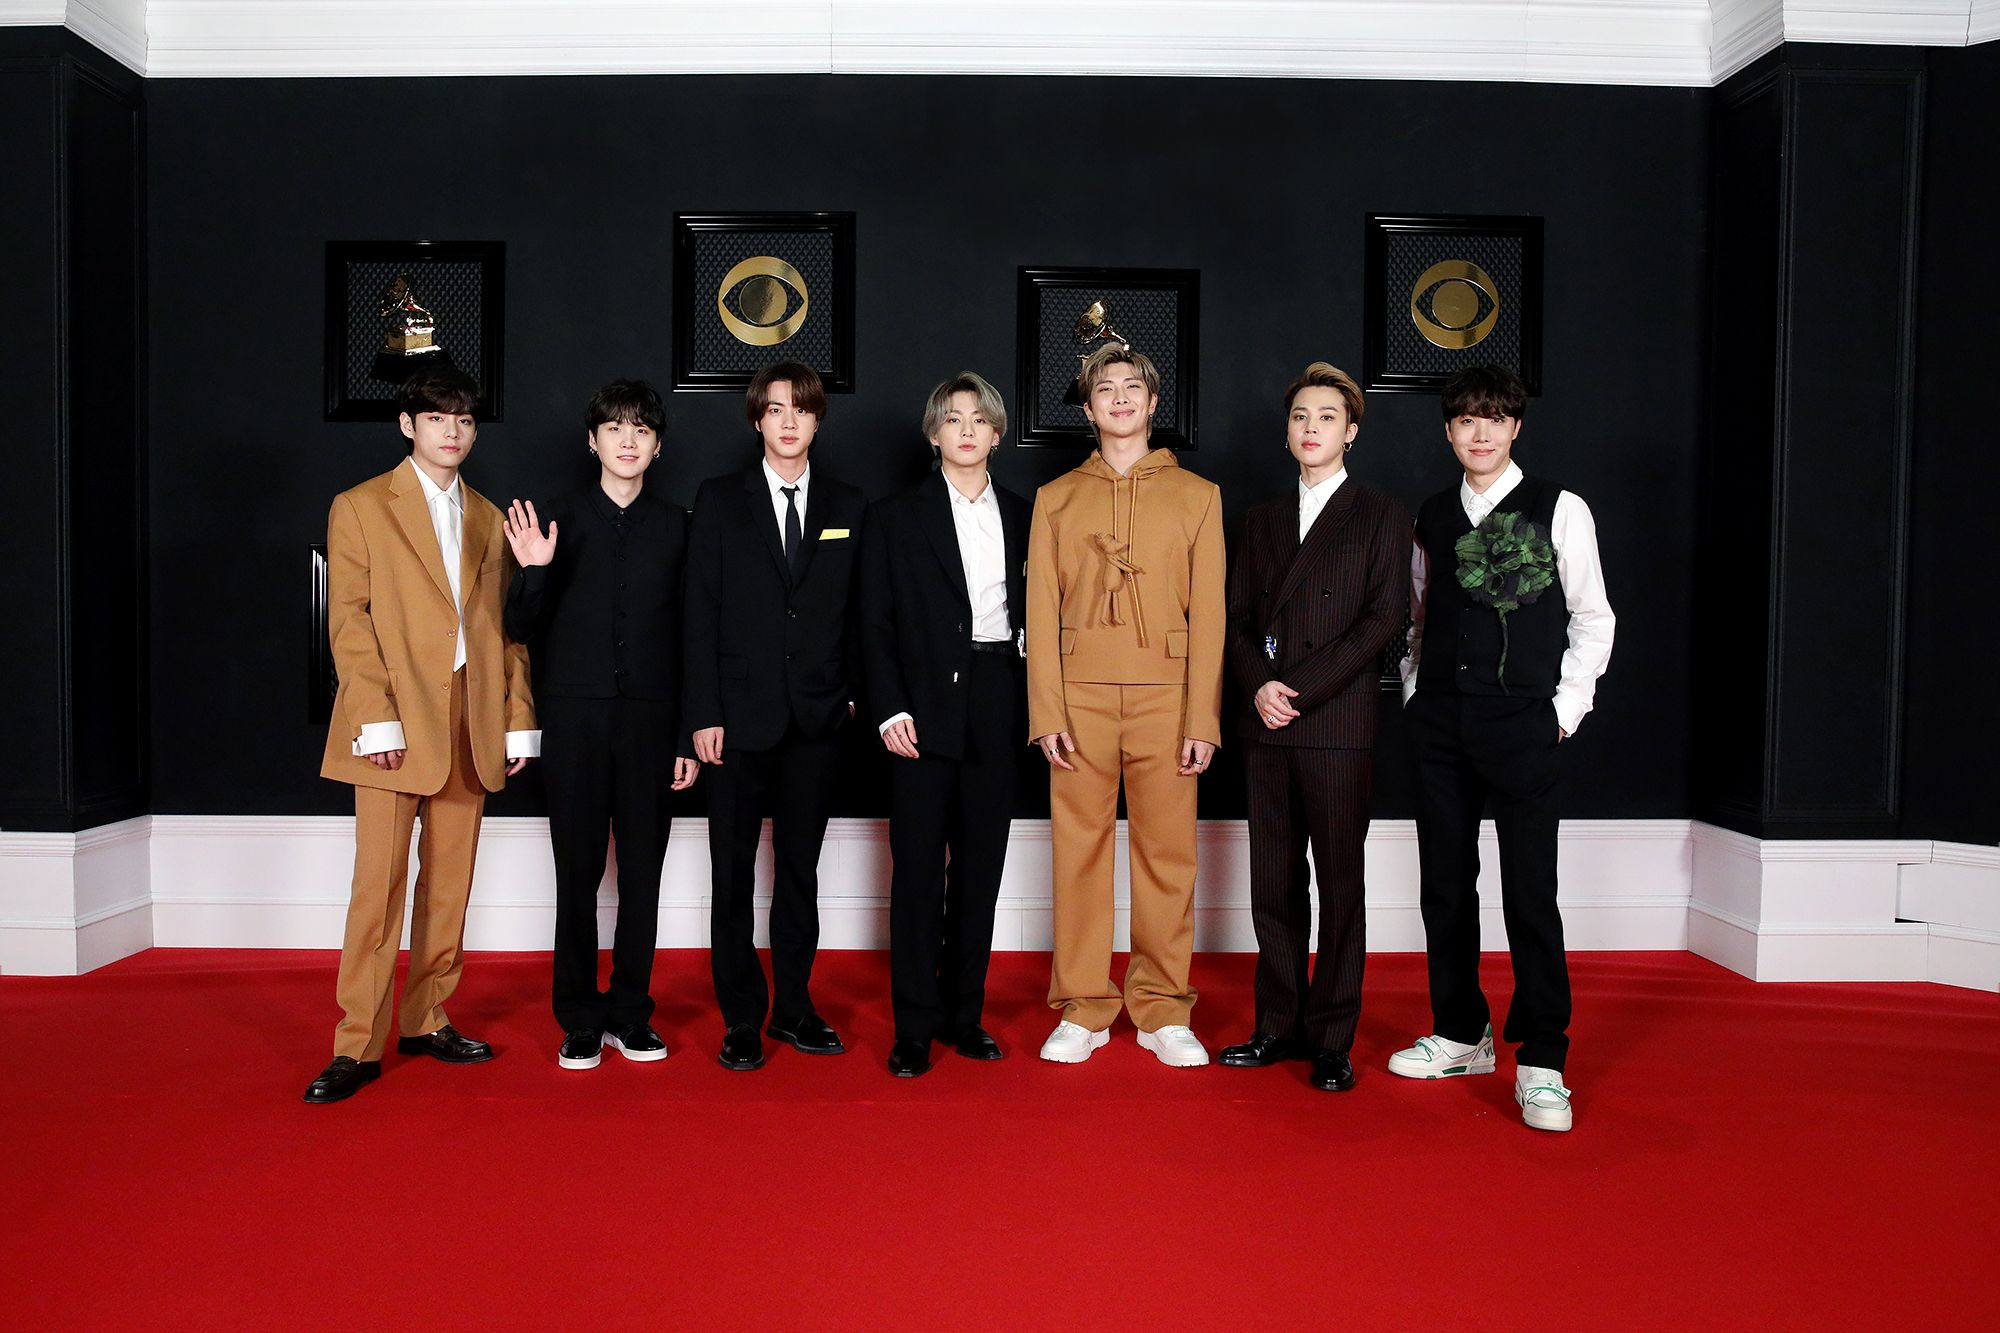 Grammys 2021: BTS Showcases 7 Fashionable Suits From Louis Vuitton